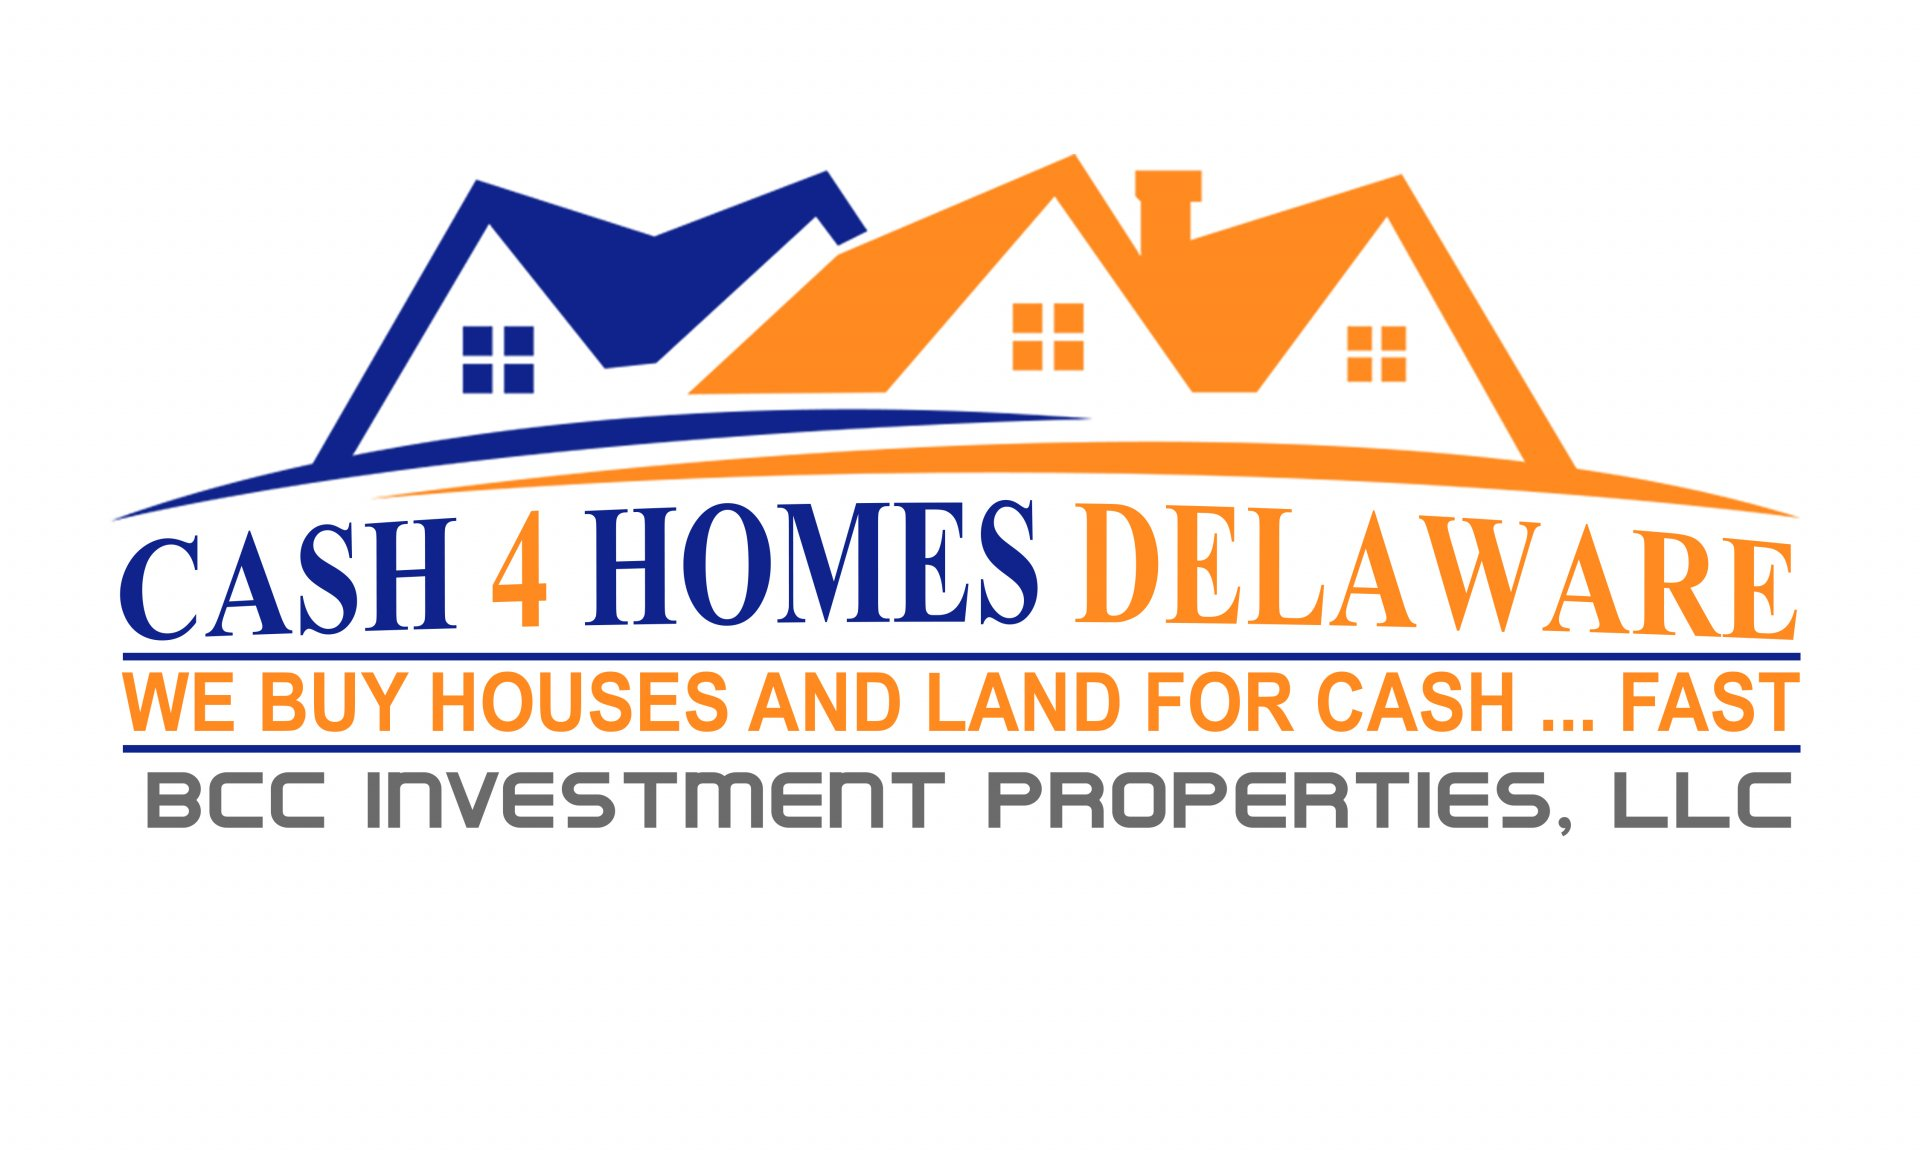 Cash For Homes Delaware logo